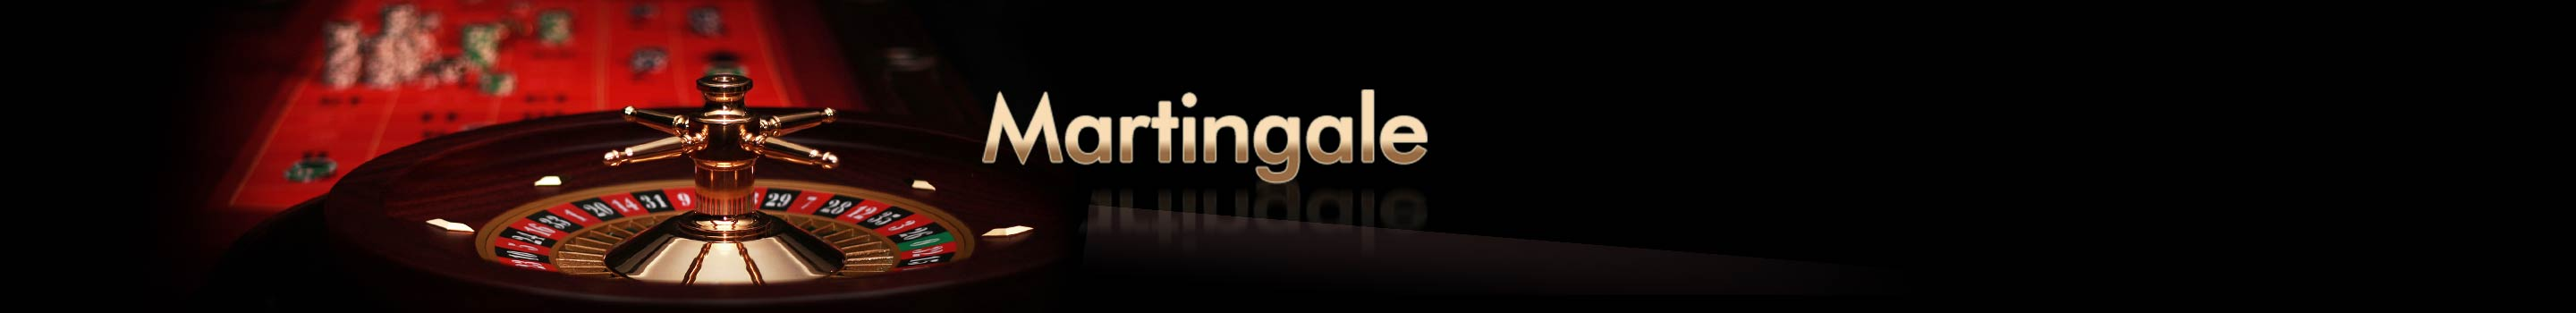 Martingale-systemet